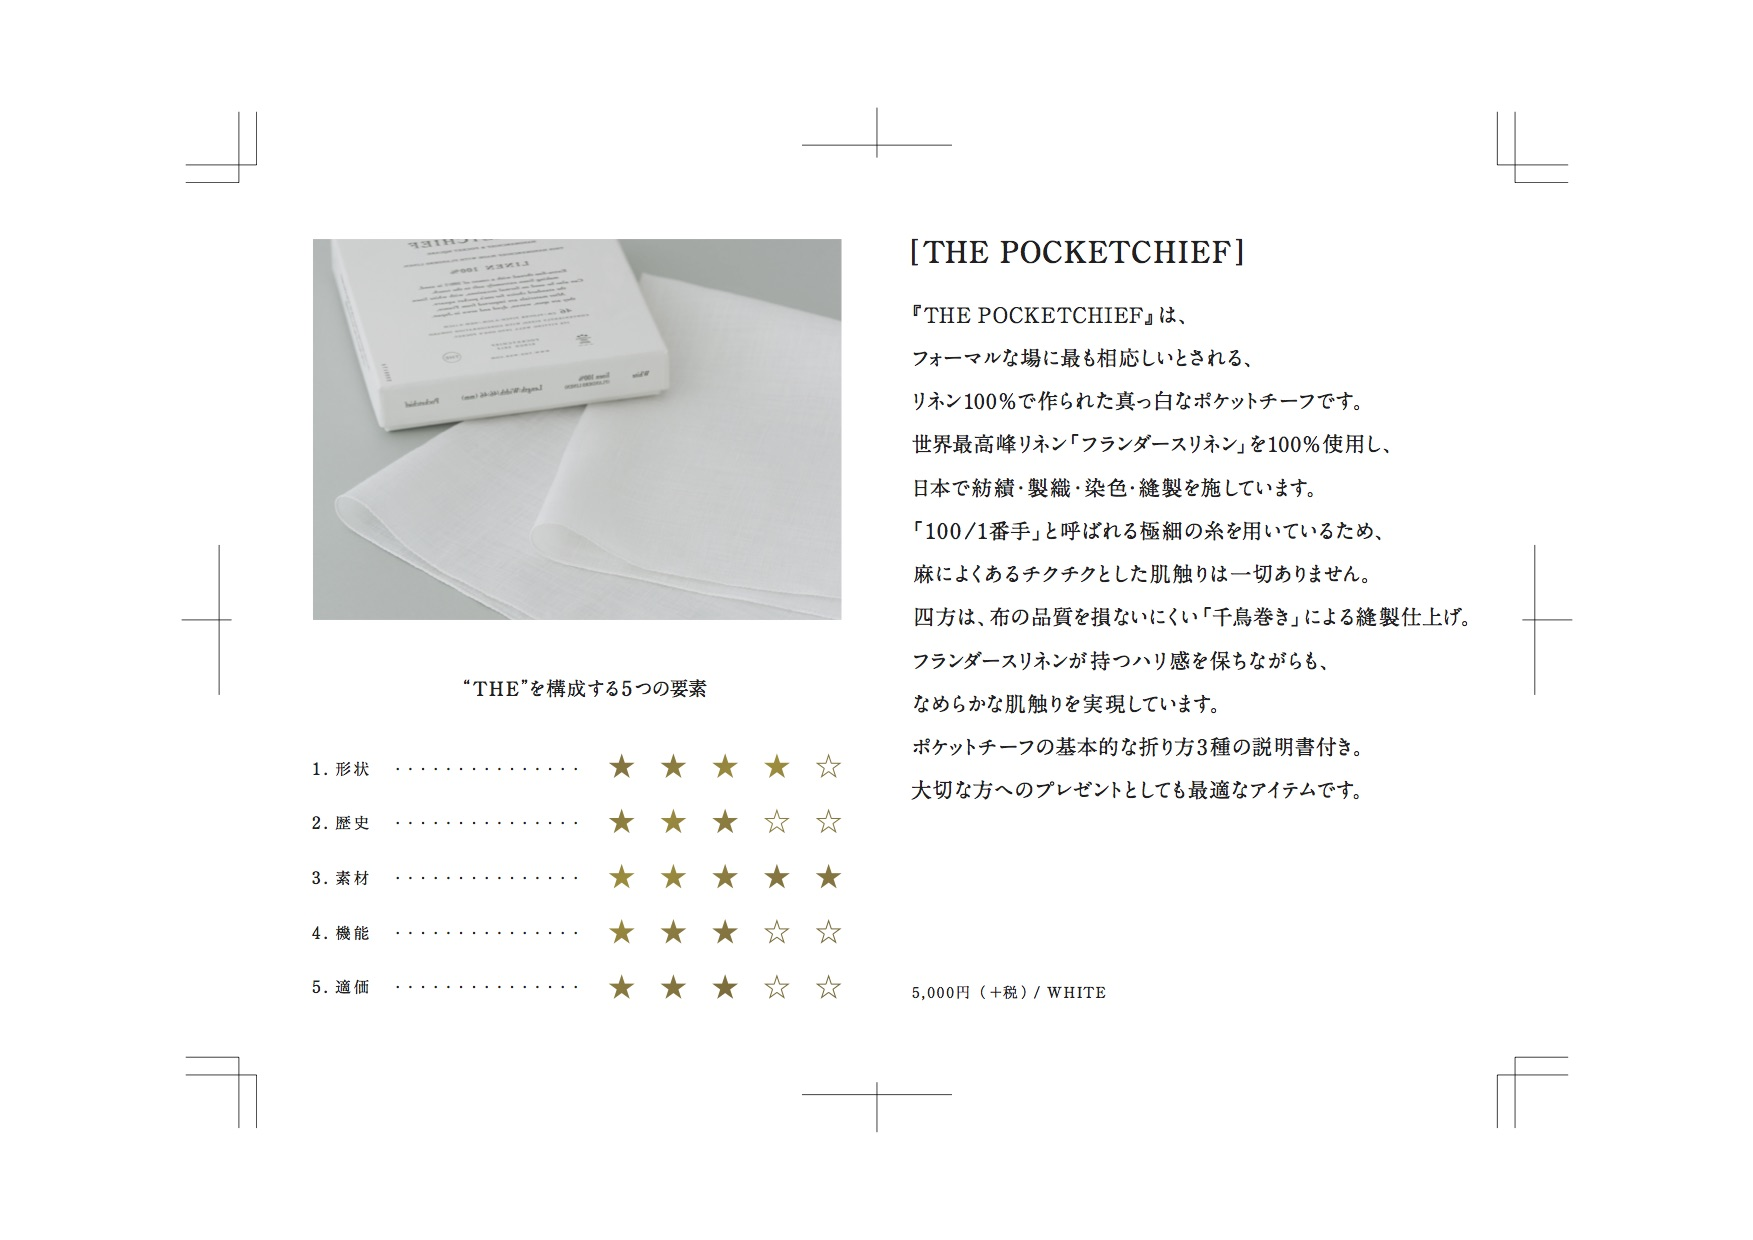 THE POCKETCHIEF